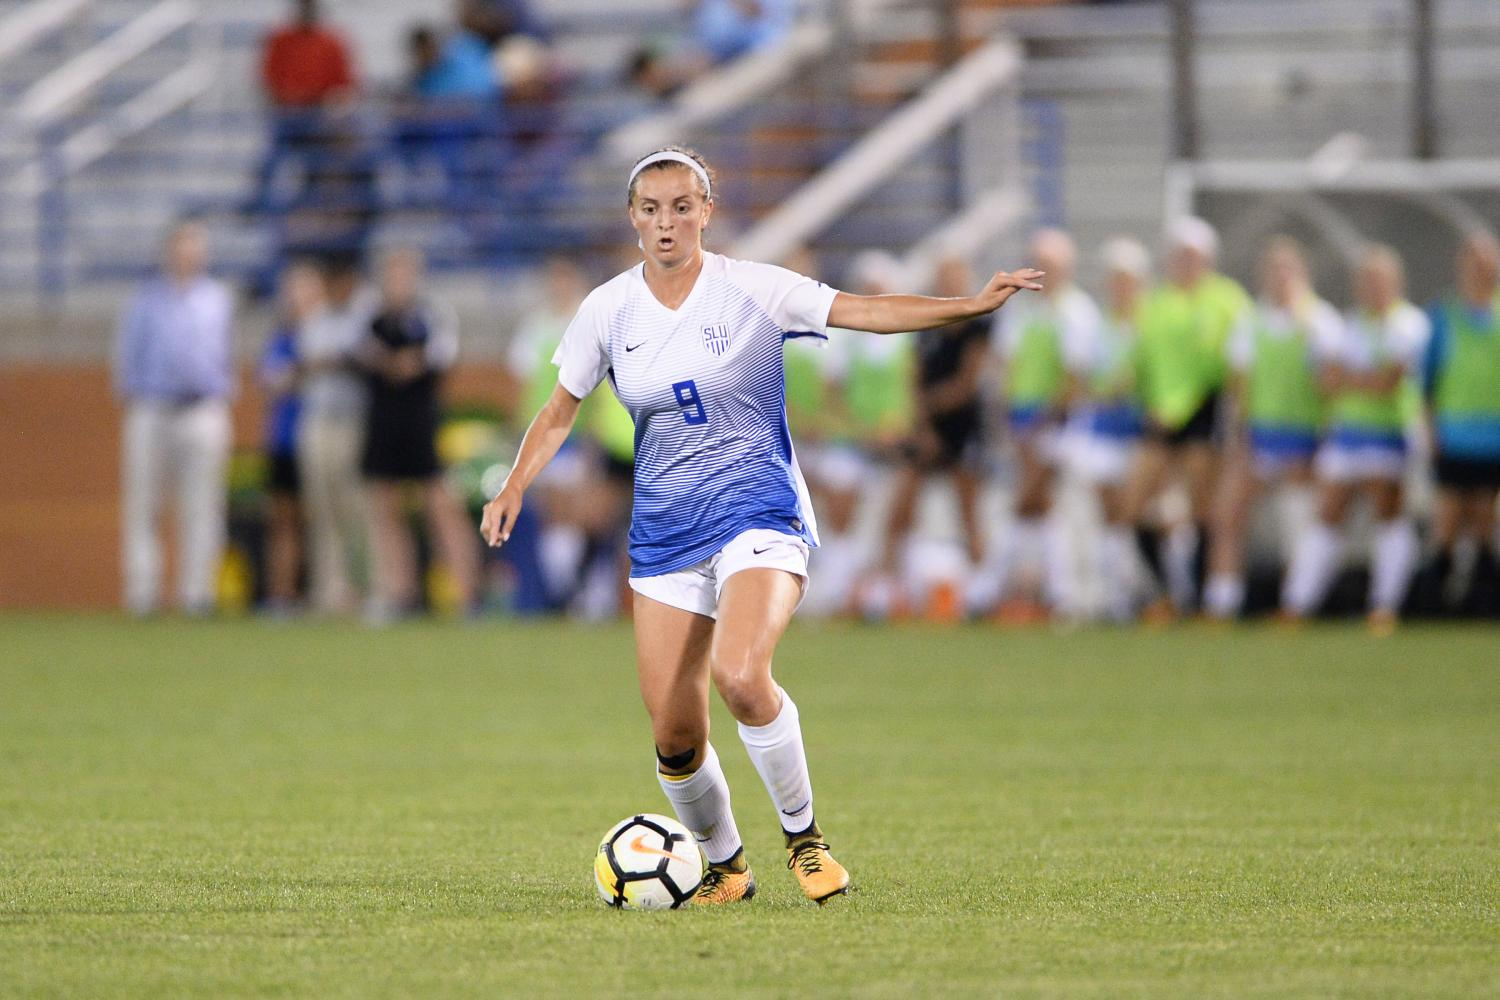 Senior midfielder Lauren Tondl gets ready to pass the ball to a teammate.